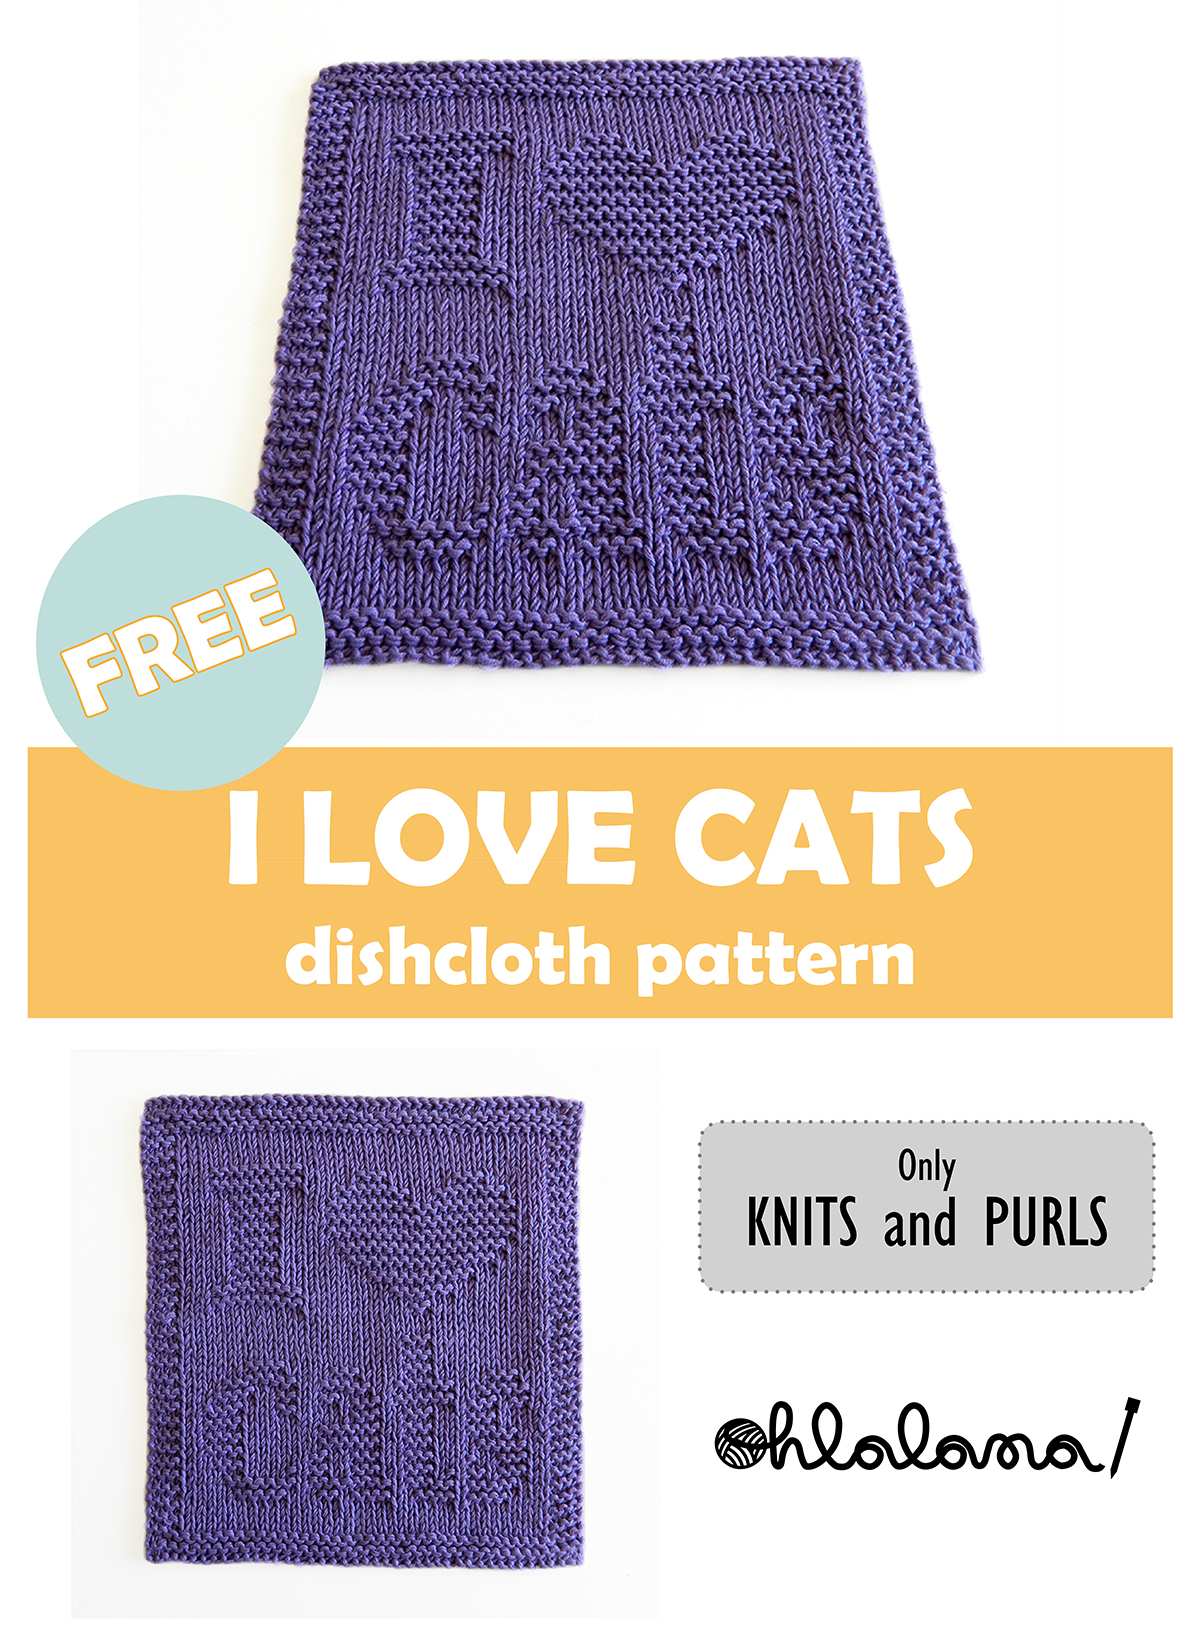 I LOVE CATS dishcloth, I LOVE CATS pattern, CAT dishcloth pattern, CAT knitting pattern, OhLaLana dishcloth free pattern